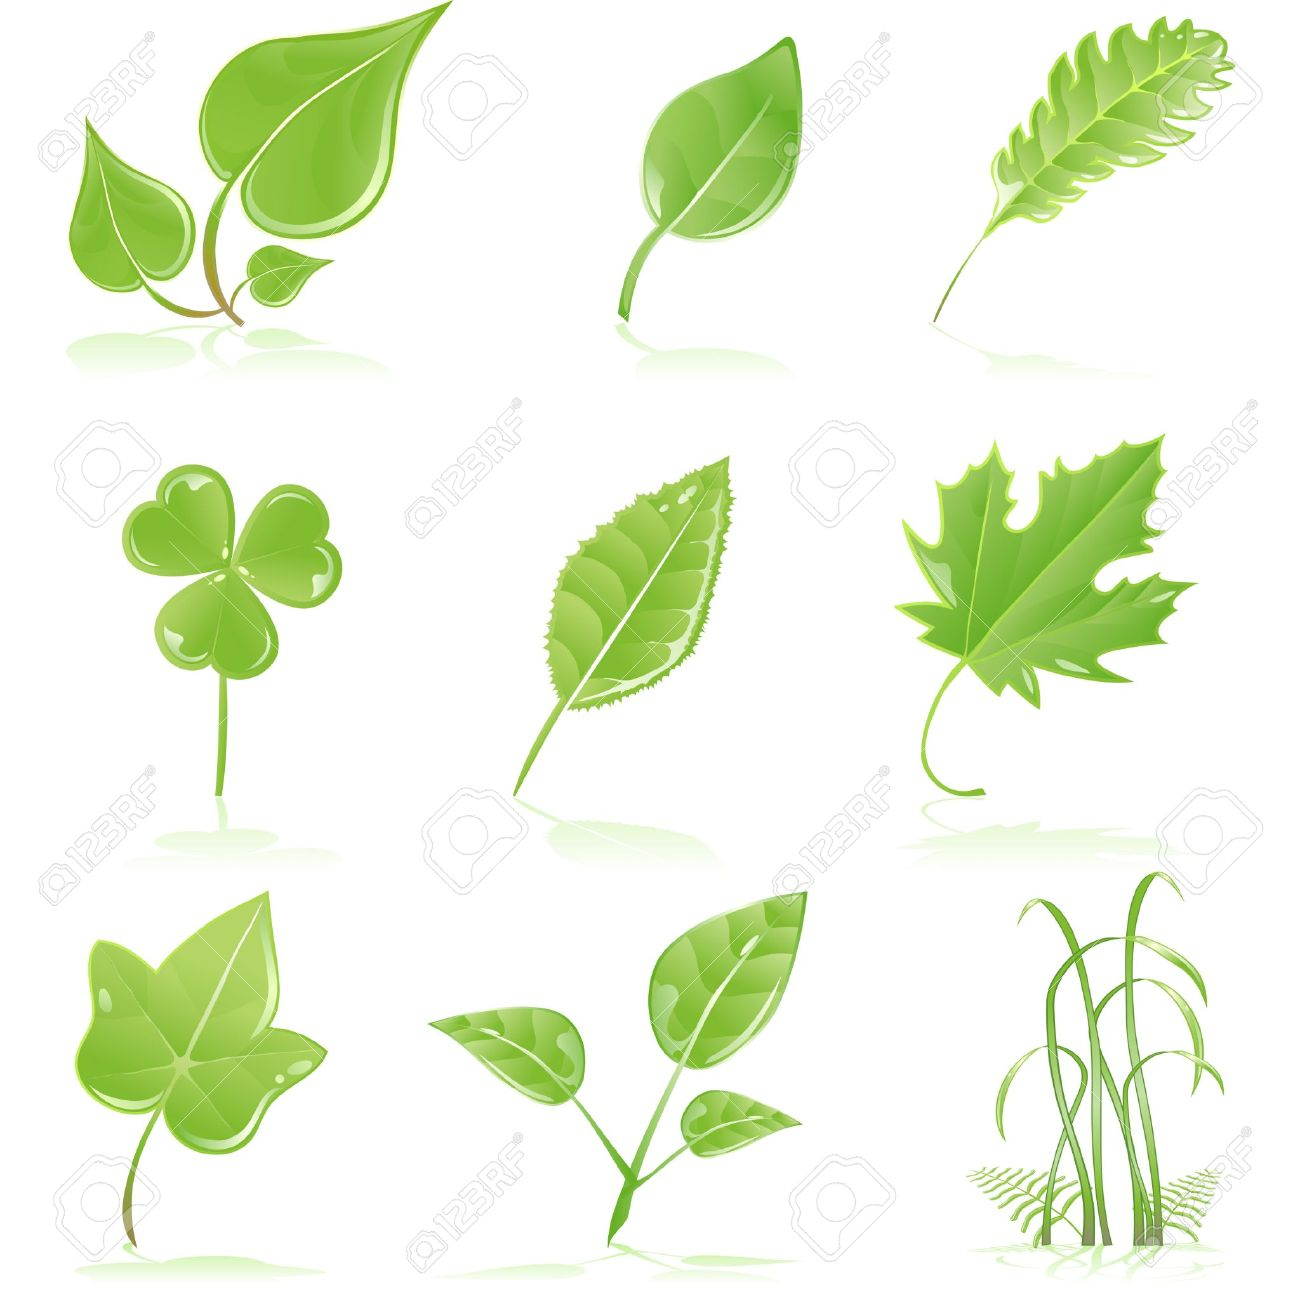 Fresh Green Leaves Clip Art.